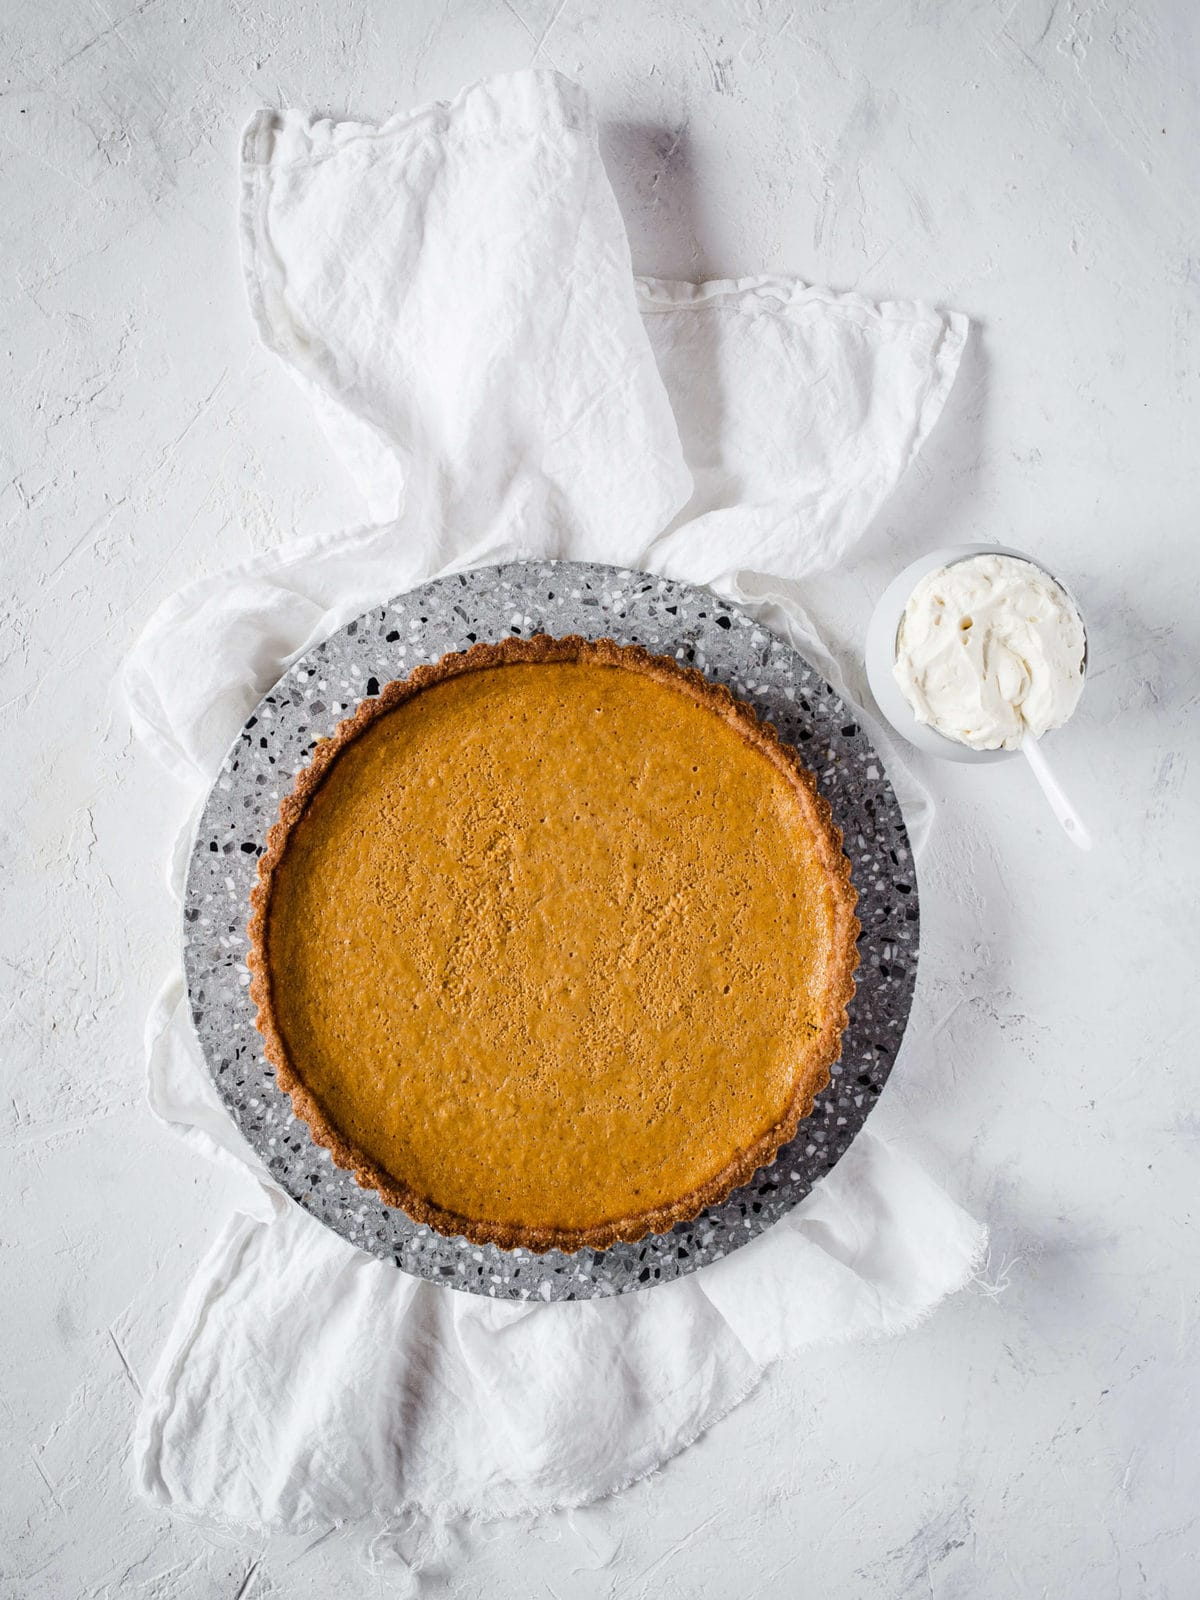 Keto Pumpkin Pie fresh out of the oven